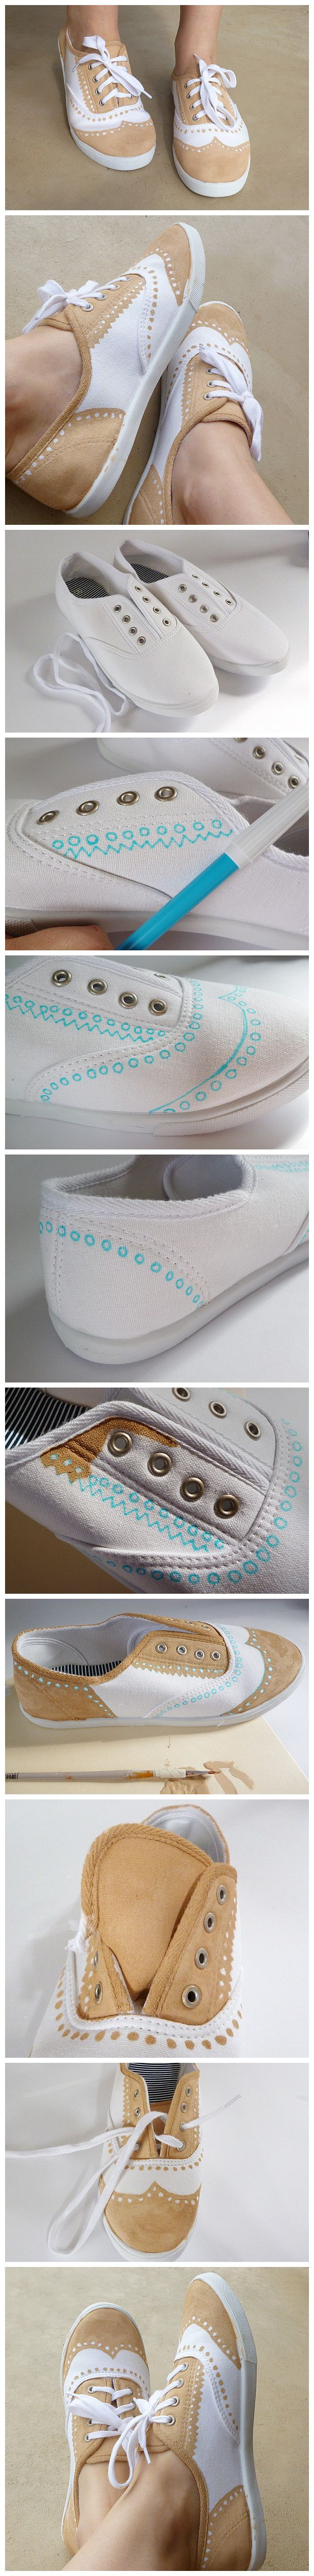 paint inexpensive white sneakers to look like golf shoes!